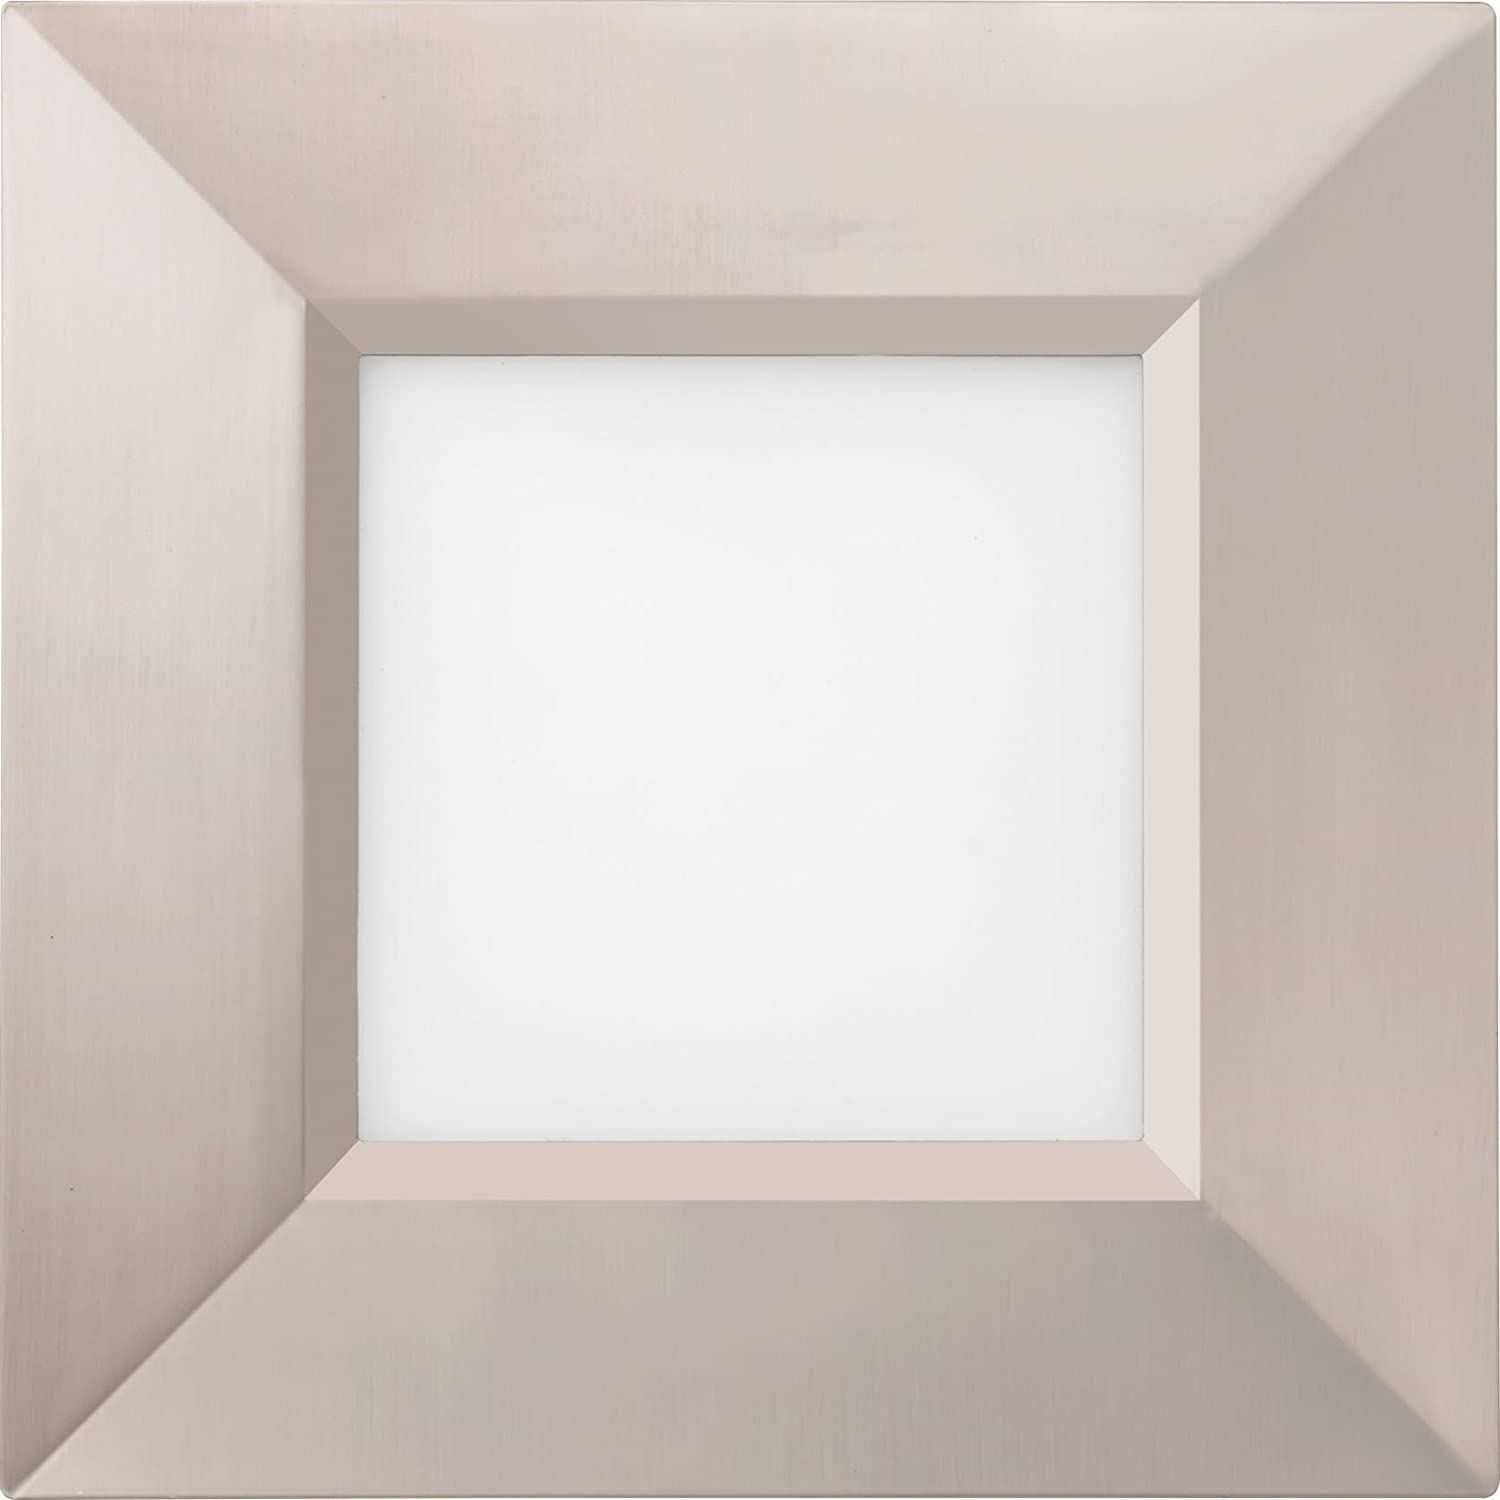 Lithonia Lighting B WF4 SQ B LED 40K MB M6 4000K 10.3W Ultra Thin Square Dimmable Recessed Ceiling Light with Baffle Trim 4 Matte Black